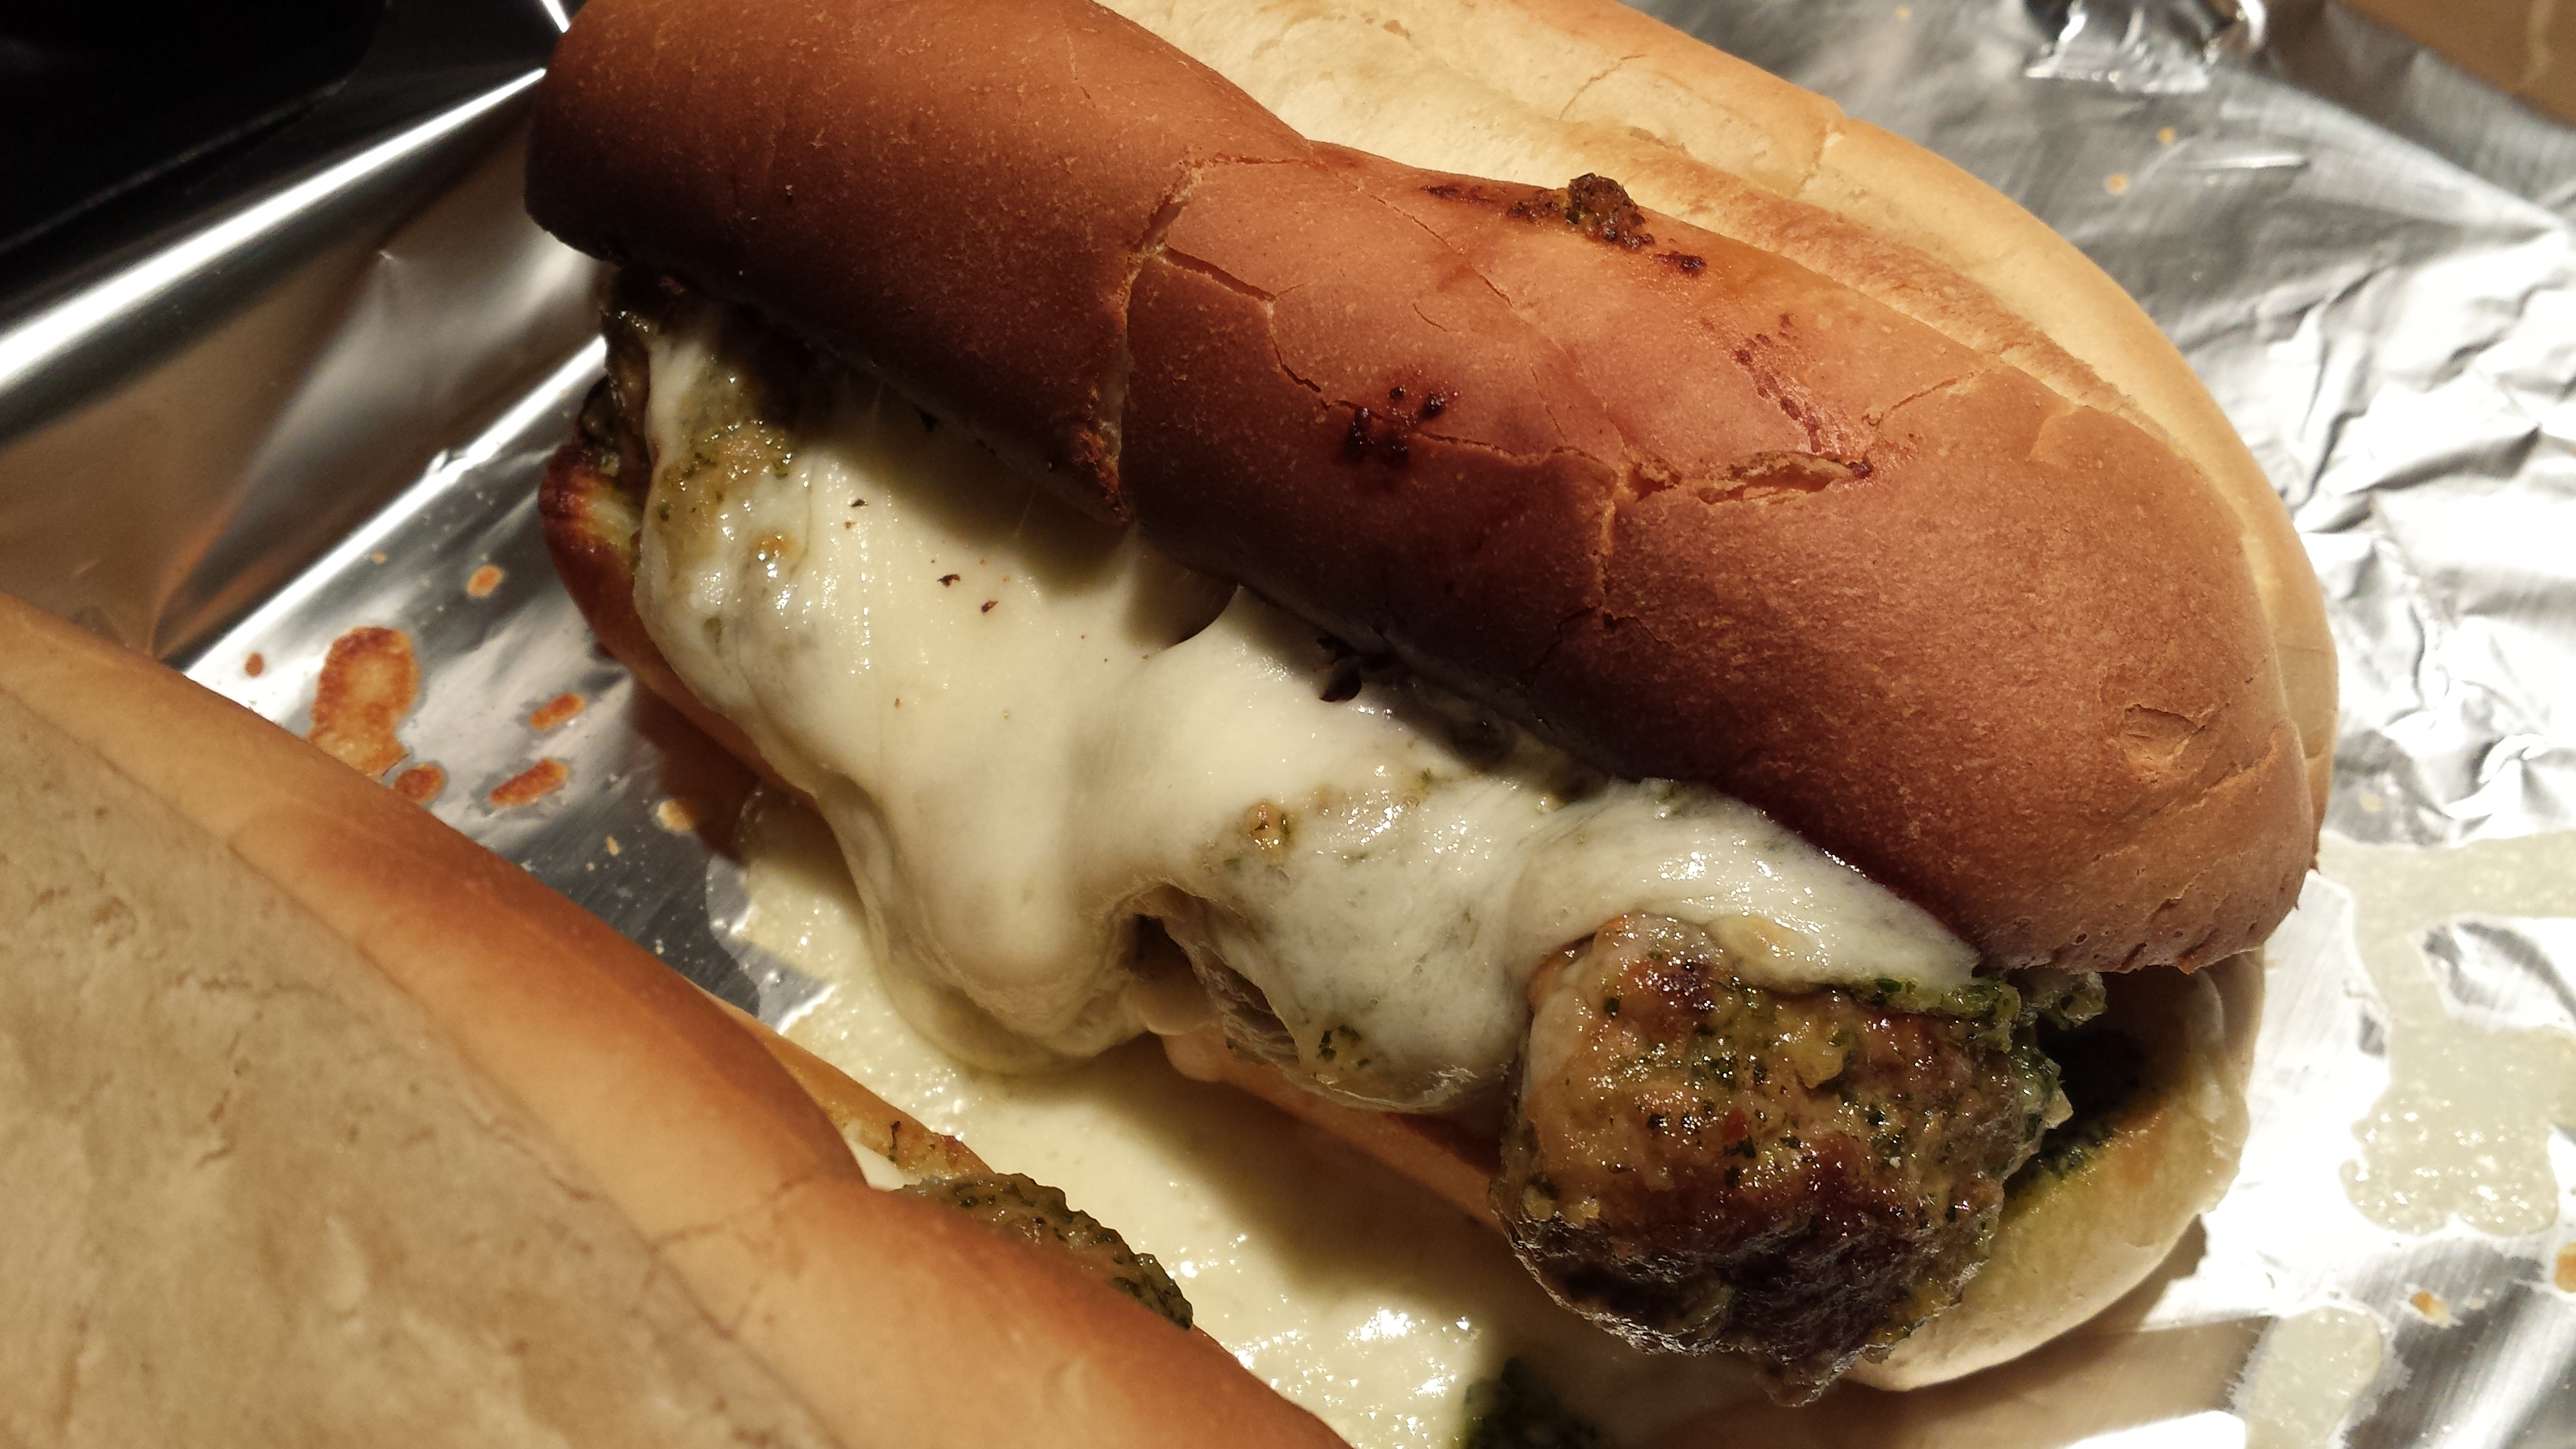 Fresh from the oven and ready to eat: Pesto Turkey Meatball Sandwich (Photo Credit: Adroit Ideals)